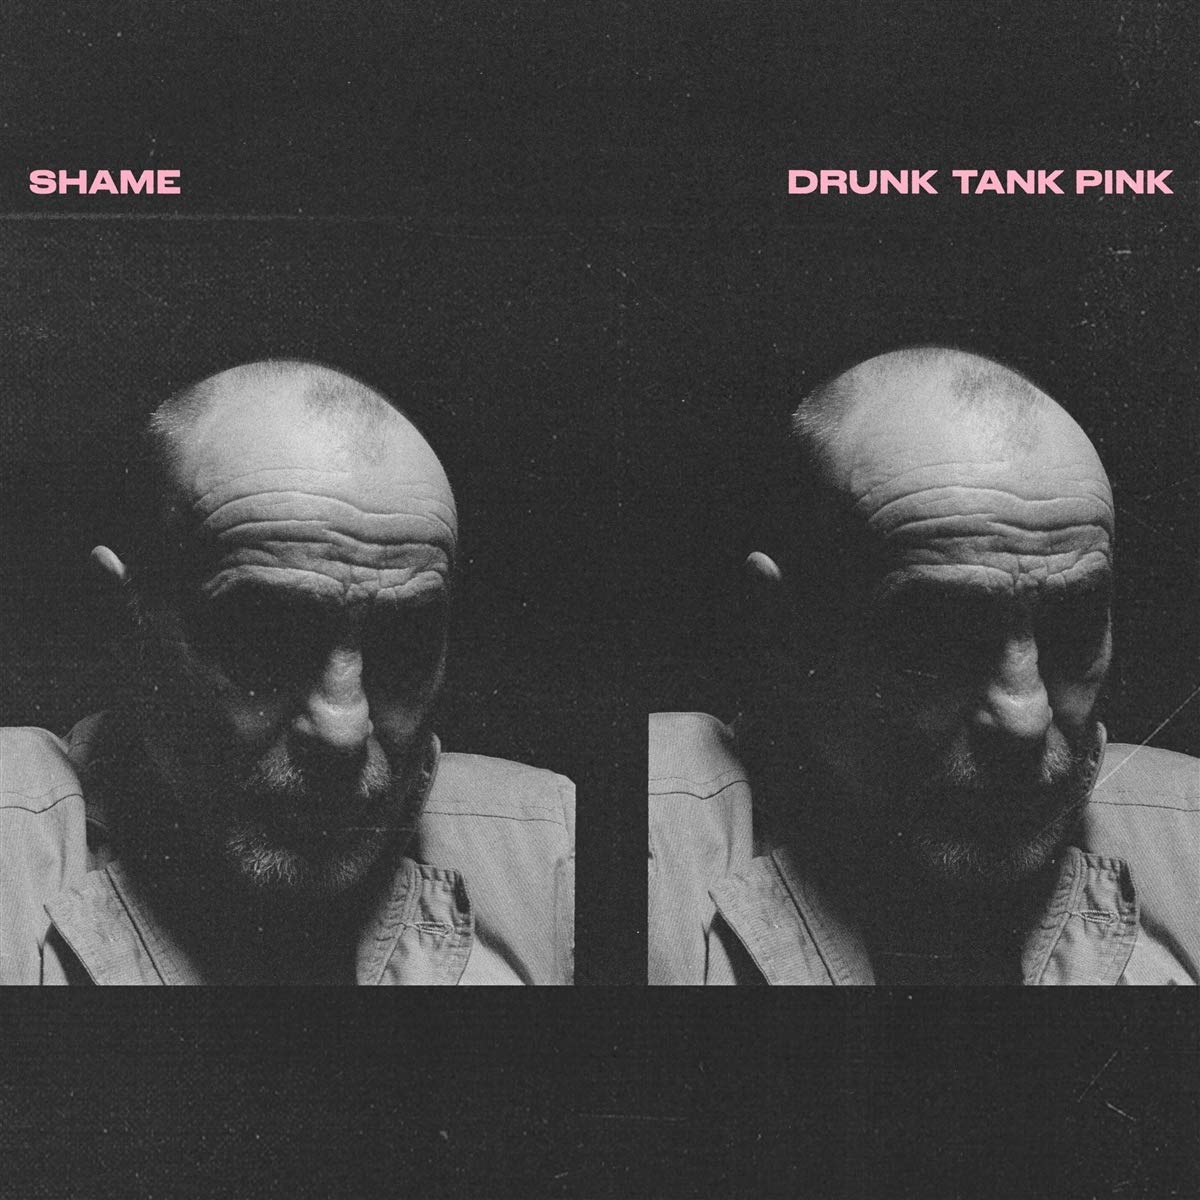 Shame: Drunk Tank Pink [Album Review]